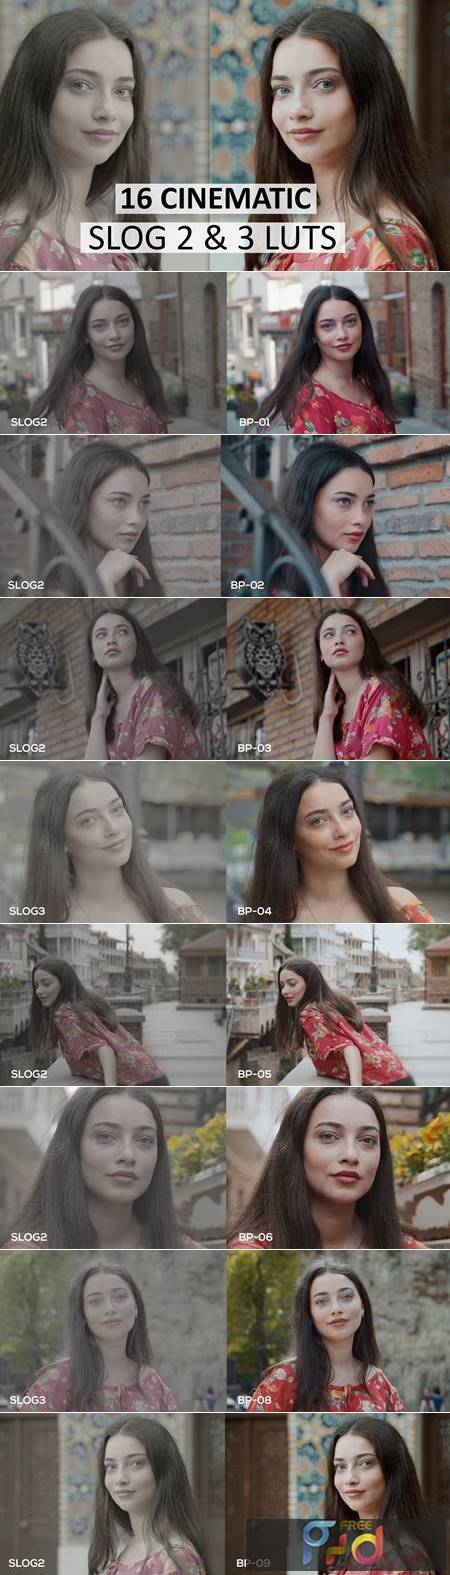 Cinematic Luts (Slog2 & Slog3) 4963148 1